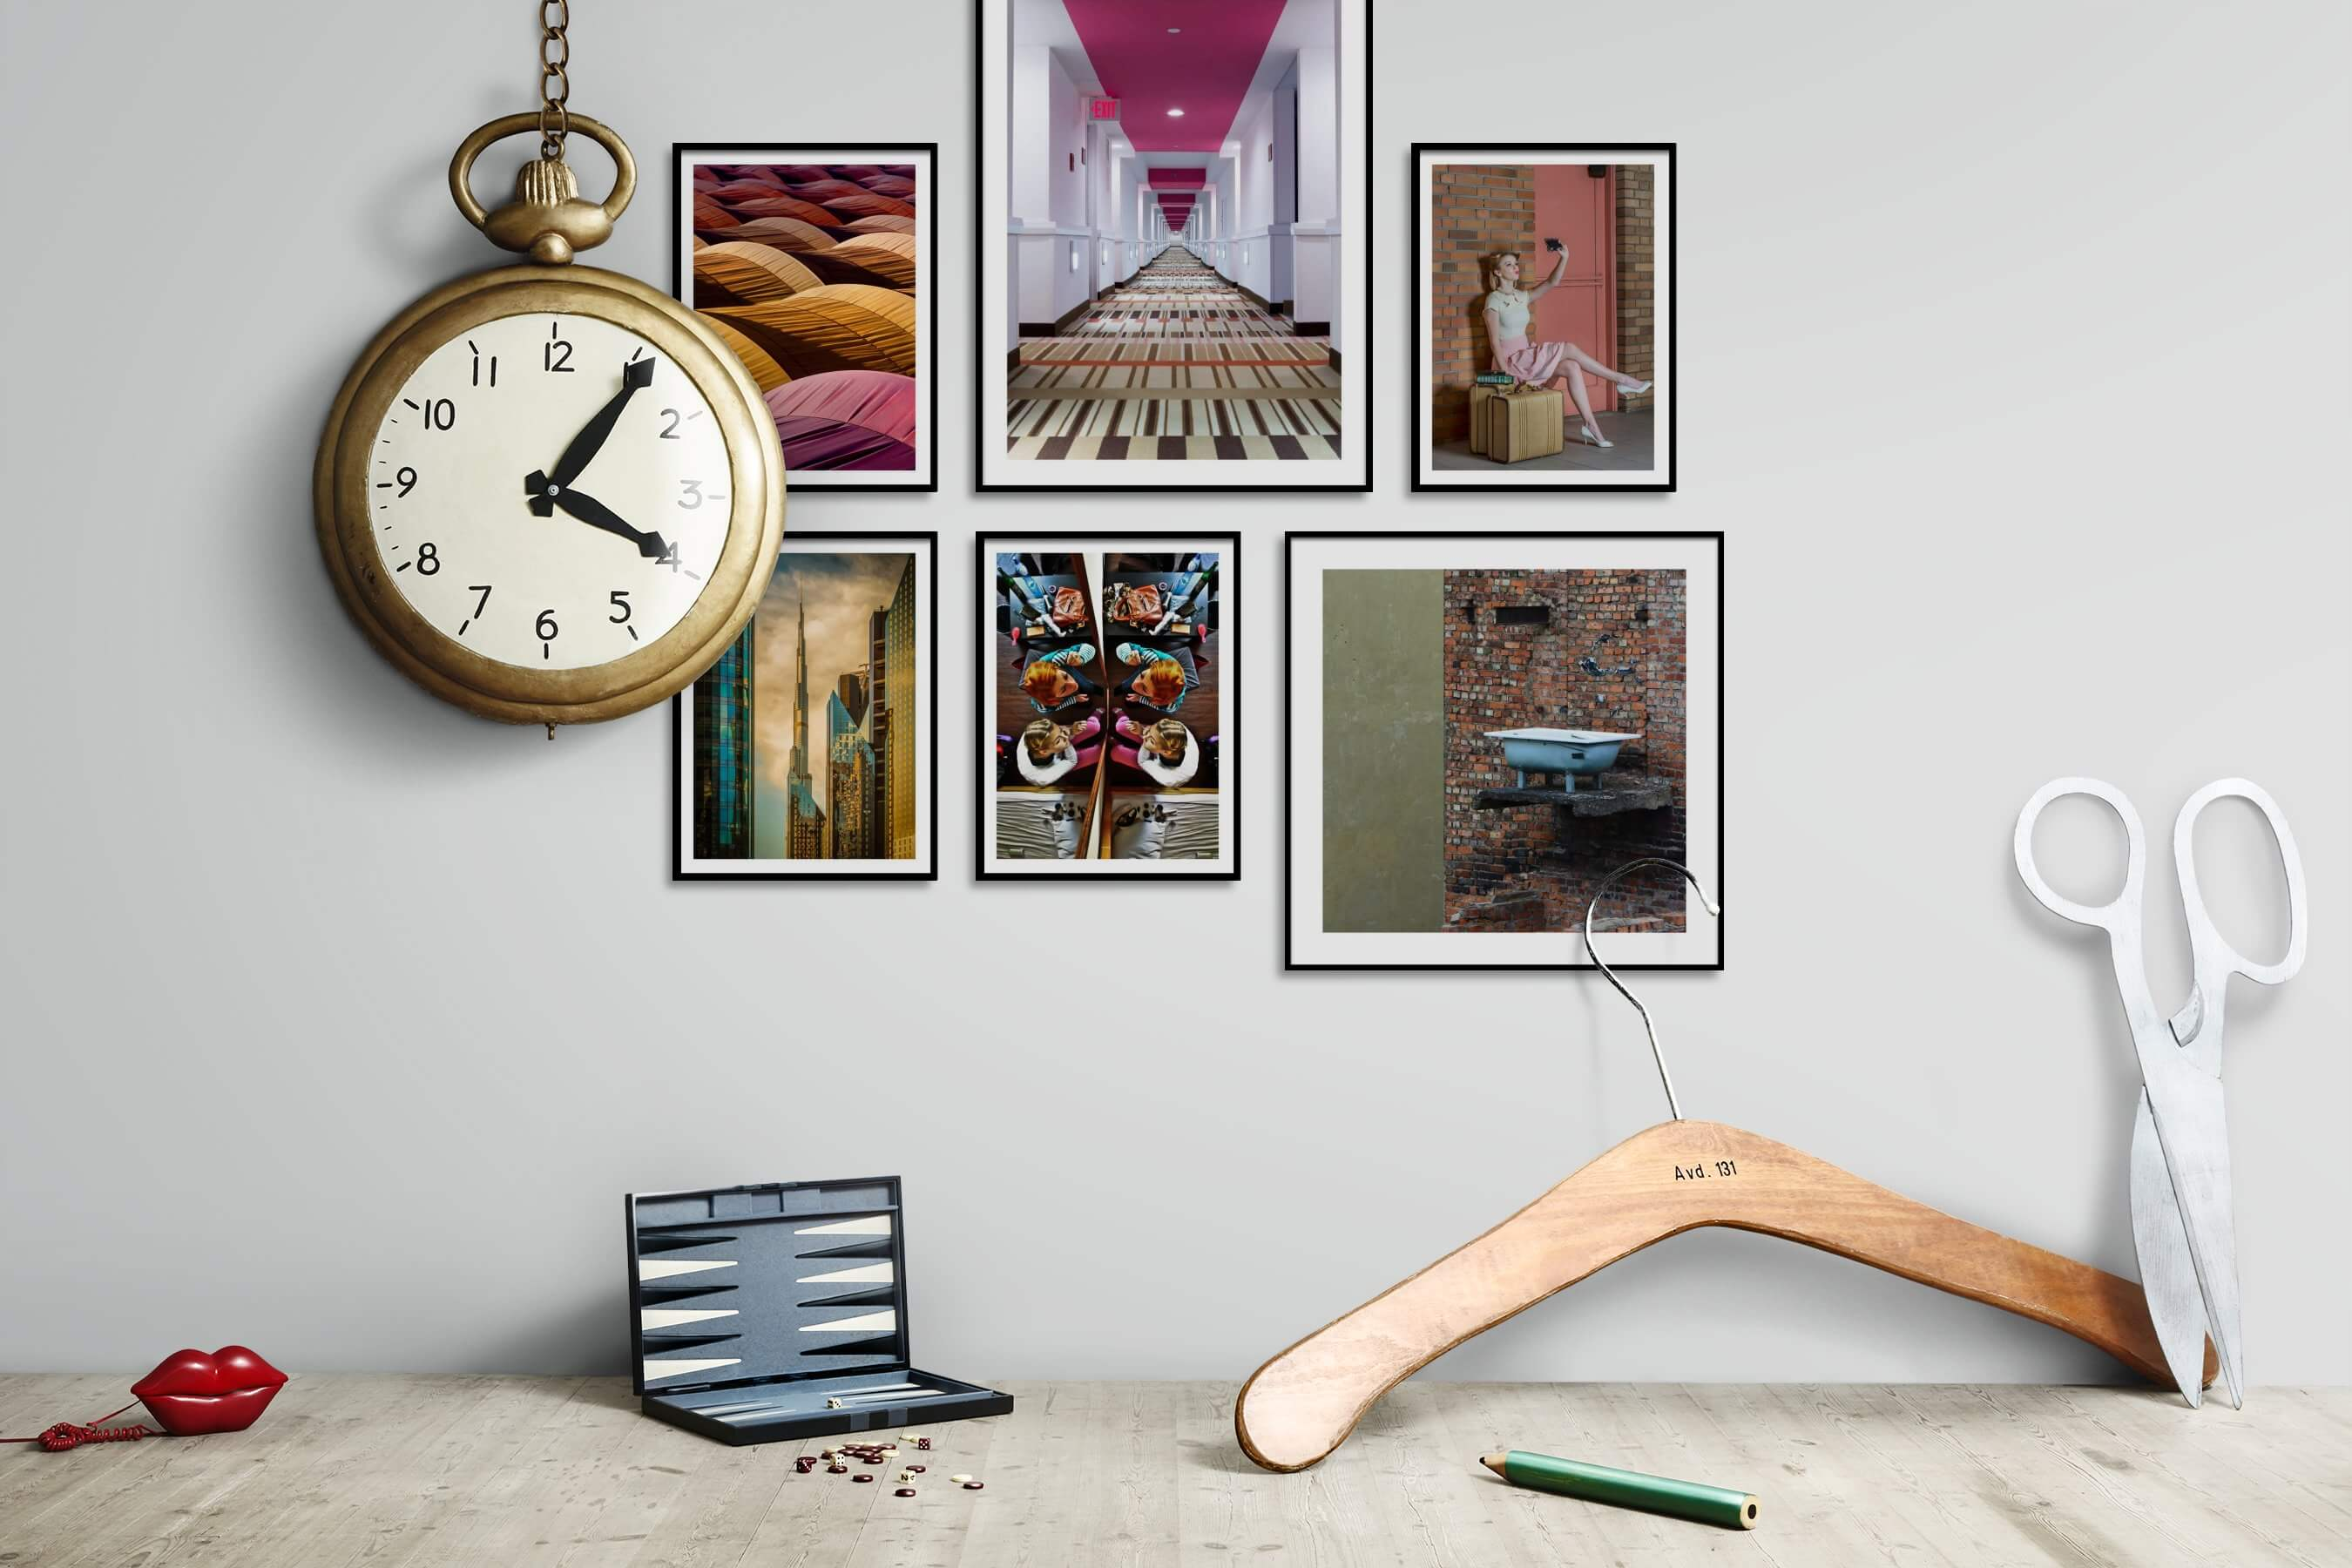 Gallery wall idea with six framed pictures arranged on a wall depicting Colorful, For the Moderate, City Life, Fashion & Beauty, Artsy, and Vintage